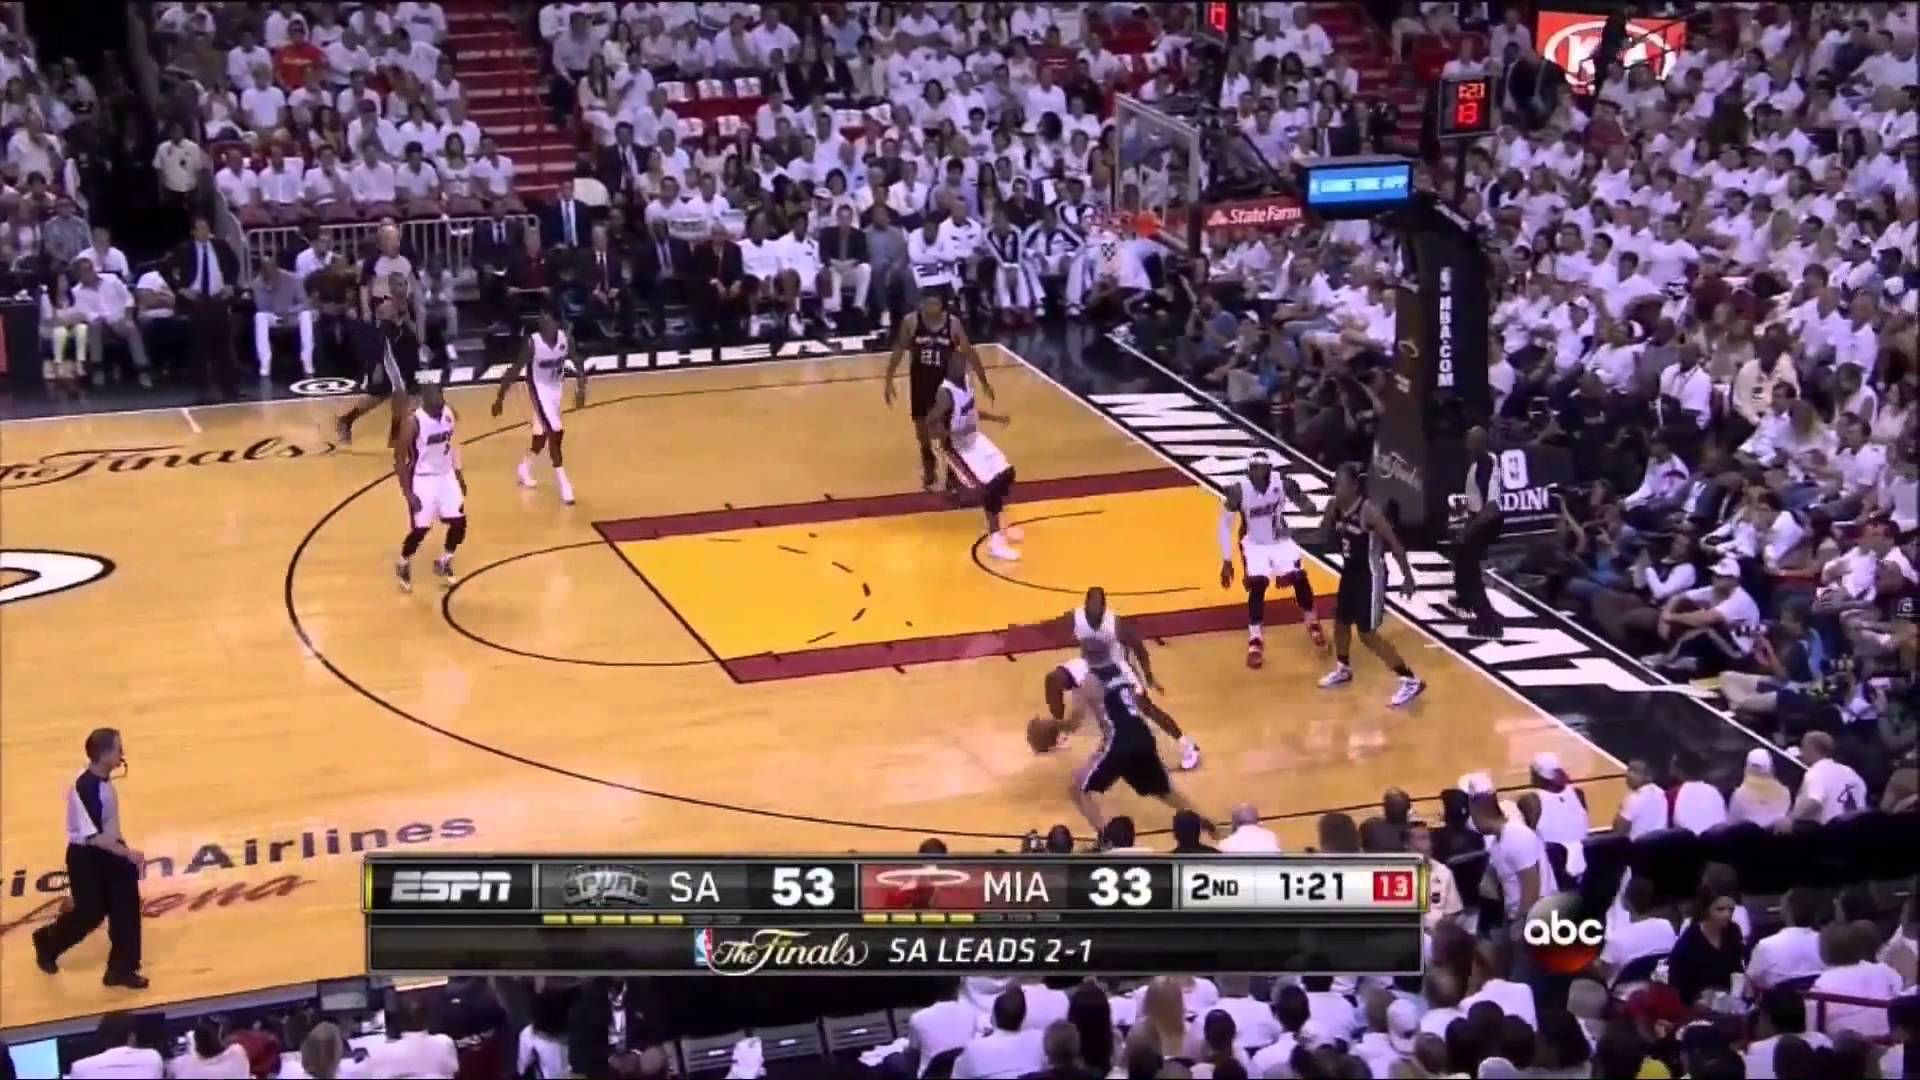 Spurs Destroy Heat (Again) As Kawhi Bests LeBron in Game 4  Hardcore hoops fans,  let's connect! •	Check out my site: http://slapdoghoops.blogspot.com •	Follow me on Twitter: www.twitter.com/slapdoghoops •	Like me on Facebook: https://www.facebook.com/slapdoghoops •	Add me to your G+ circles: https://plus.google.com/+SlapdoghoopsBlogspot/posts •	And for  any business or professional inquiries, you can contact me on Linked In: http://www.linkedin.com/in/slapdoghoops